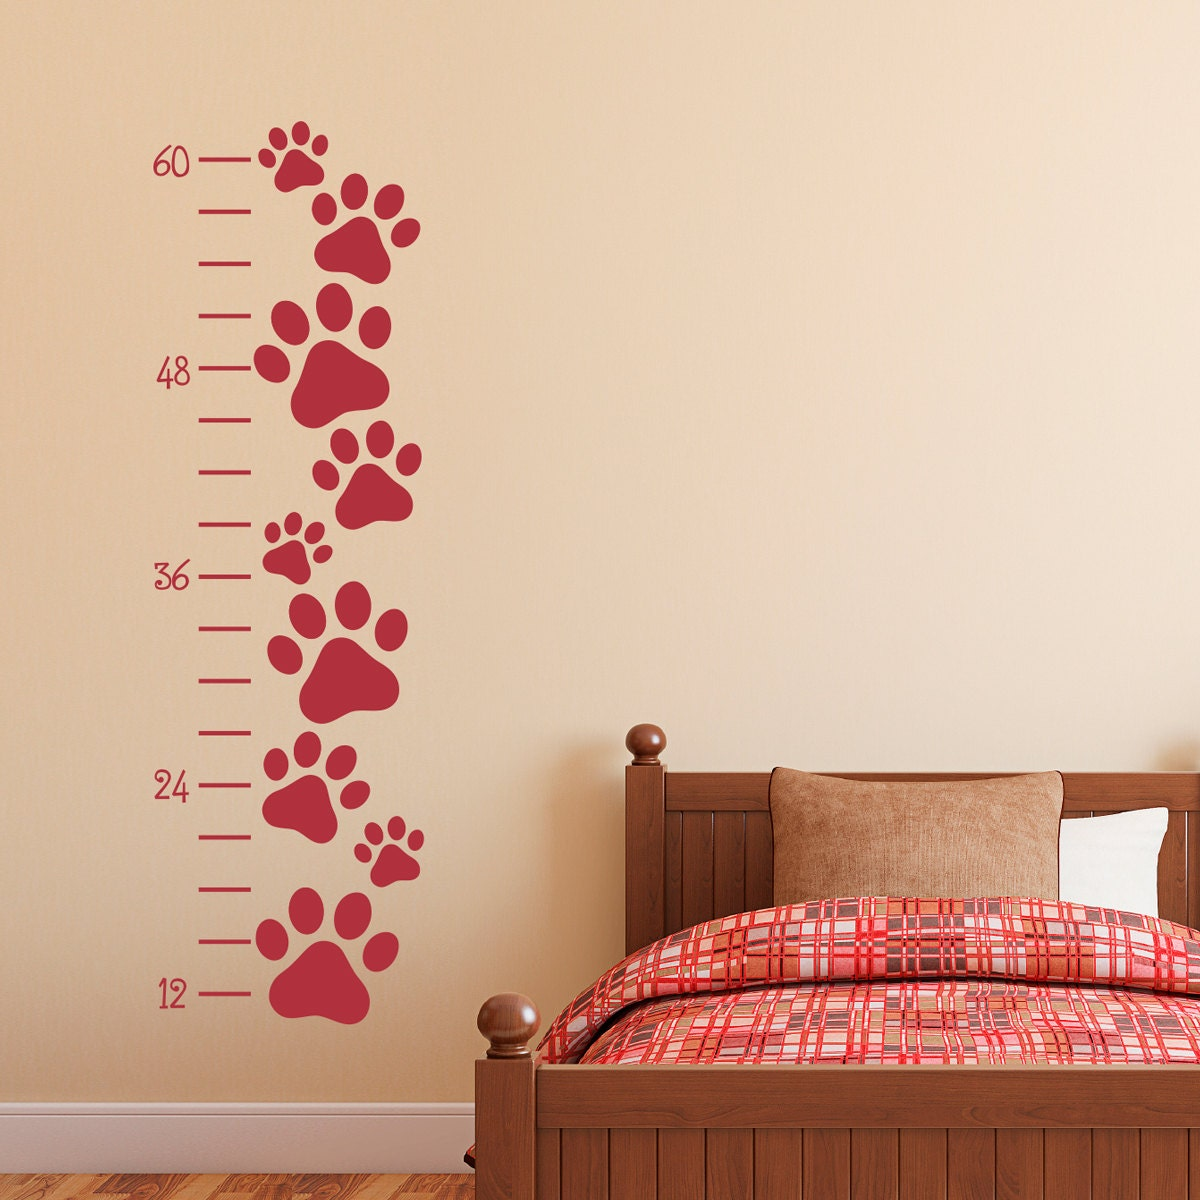 Paw print growth chart wall decal growth chart dog pawprint description the paw print growth chart wall decal geenschuldenfo Image collections